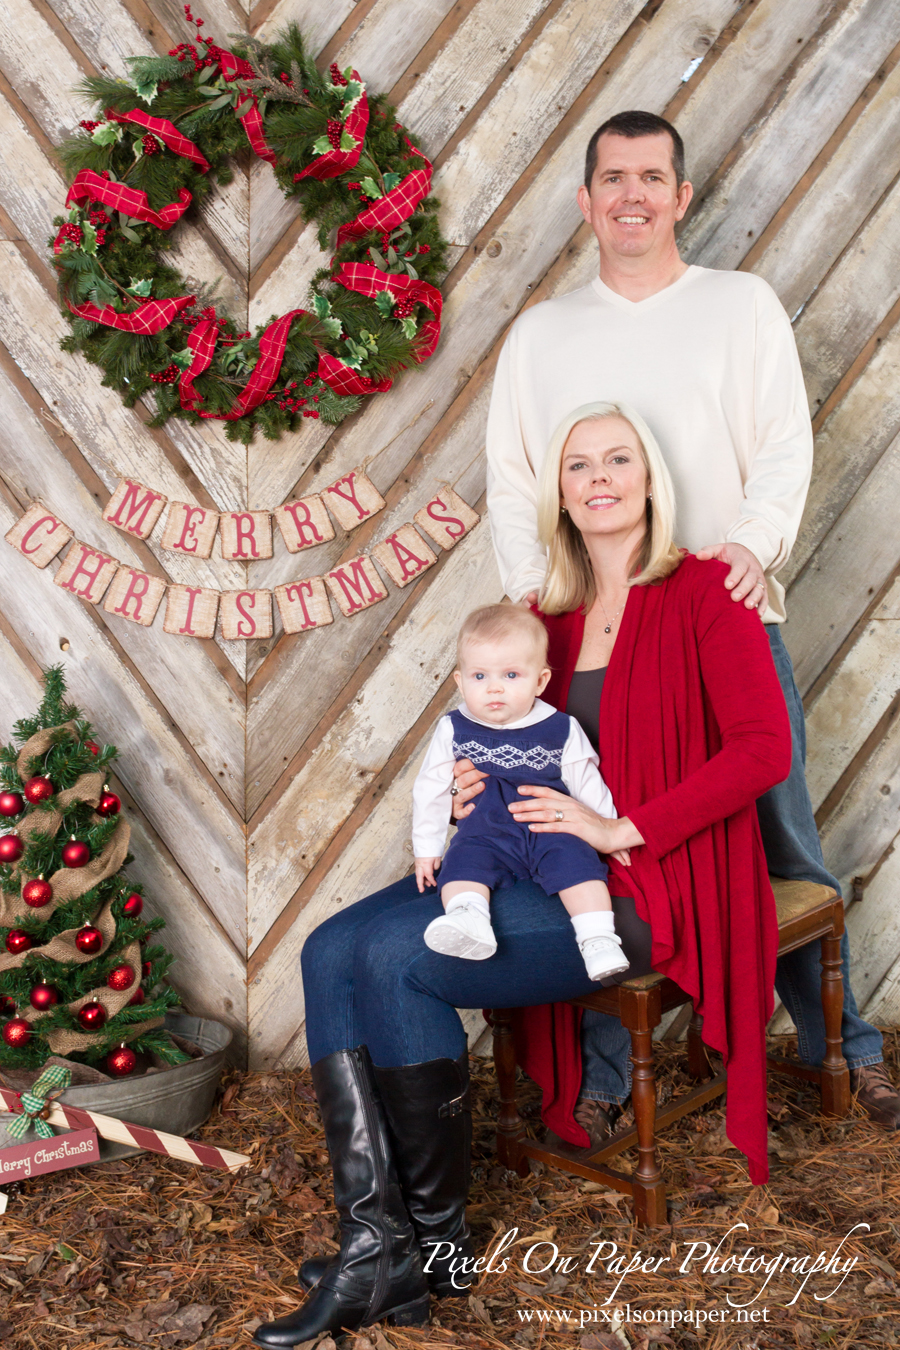 Pixels On Paper Photography Holden Gray Child and Family Christmas Portrait Photo